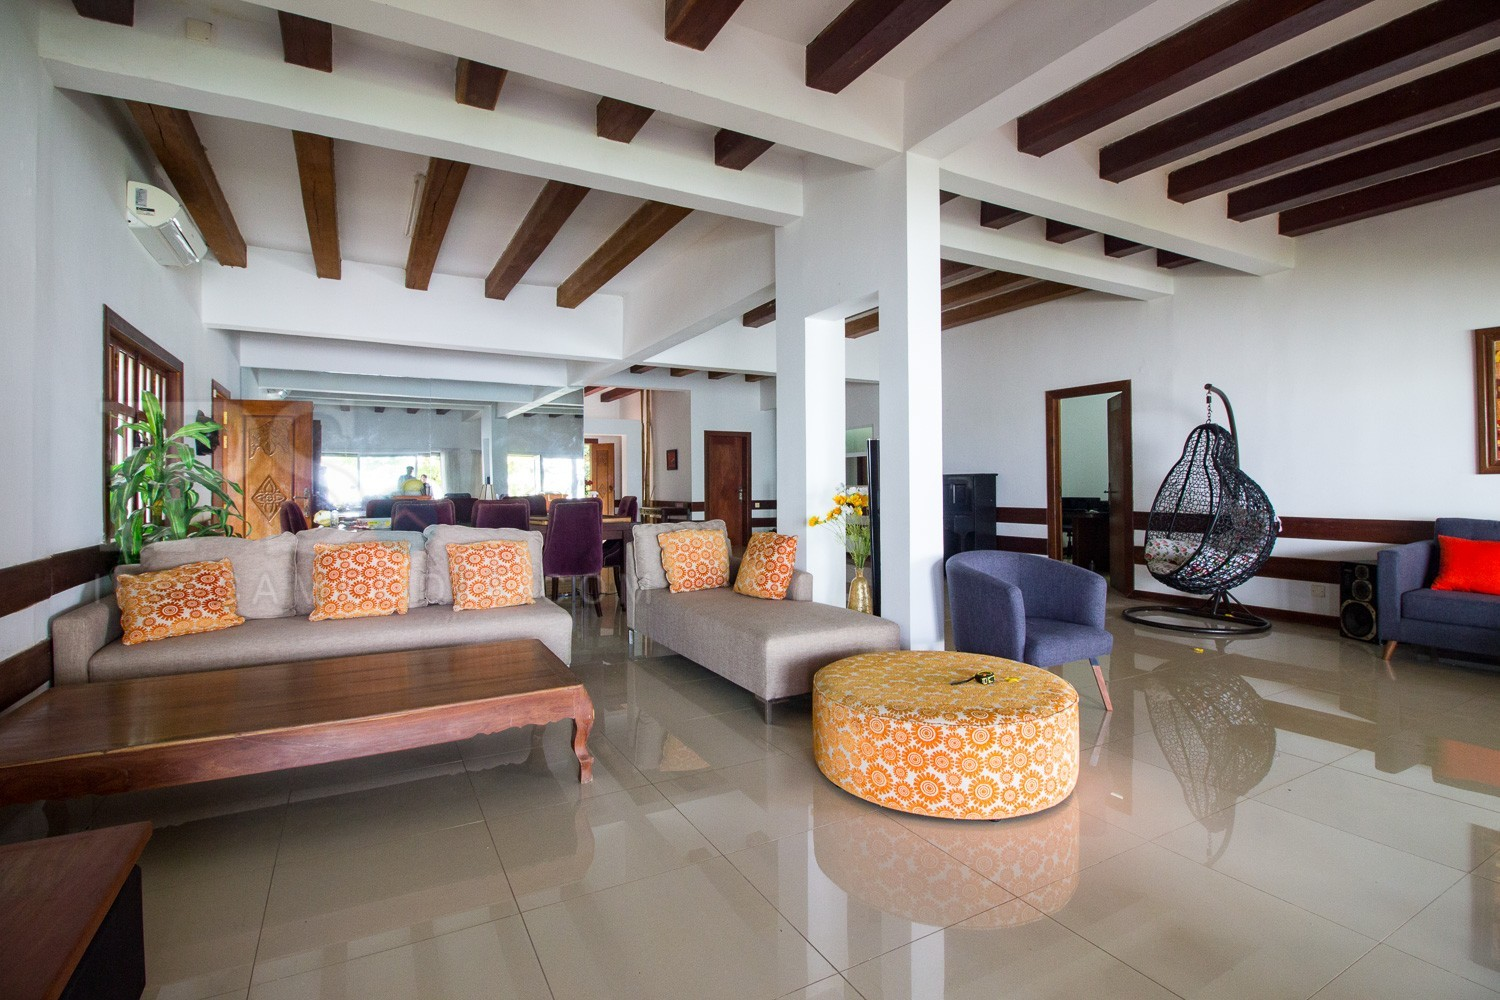 3 Bedroom Apartment For Rent - Chroy Chongva, Phnom Penh